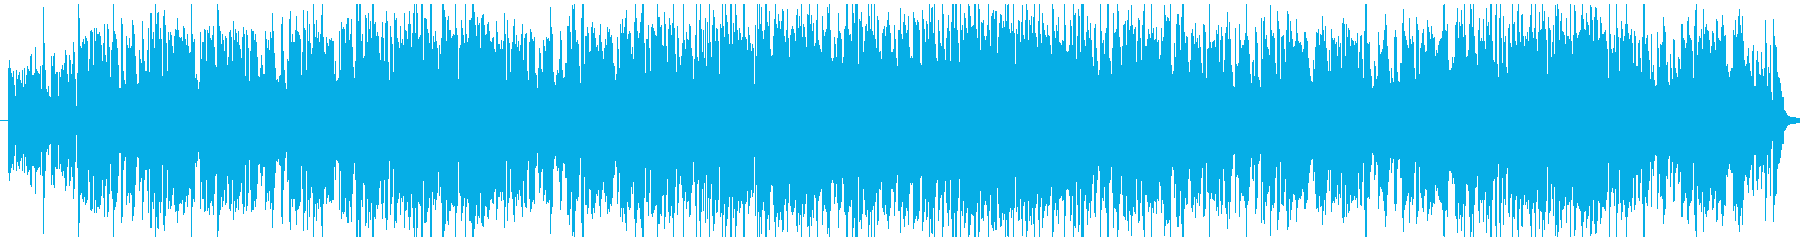 Comedy tone with funny sounds's reproduced waveform